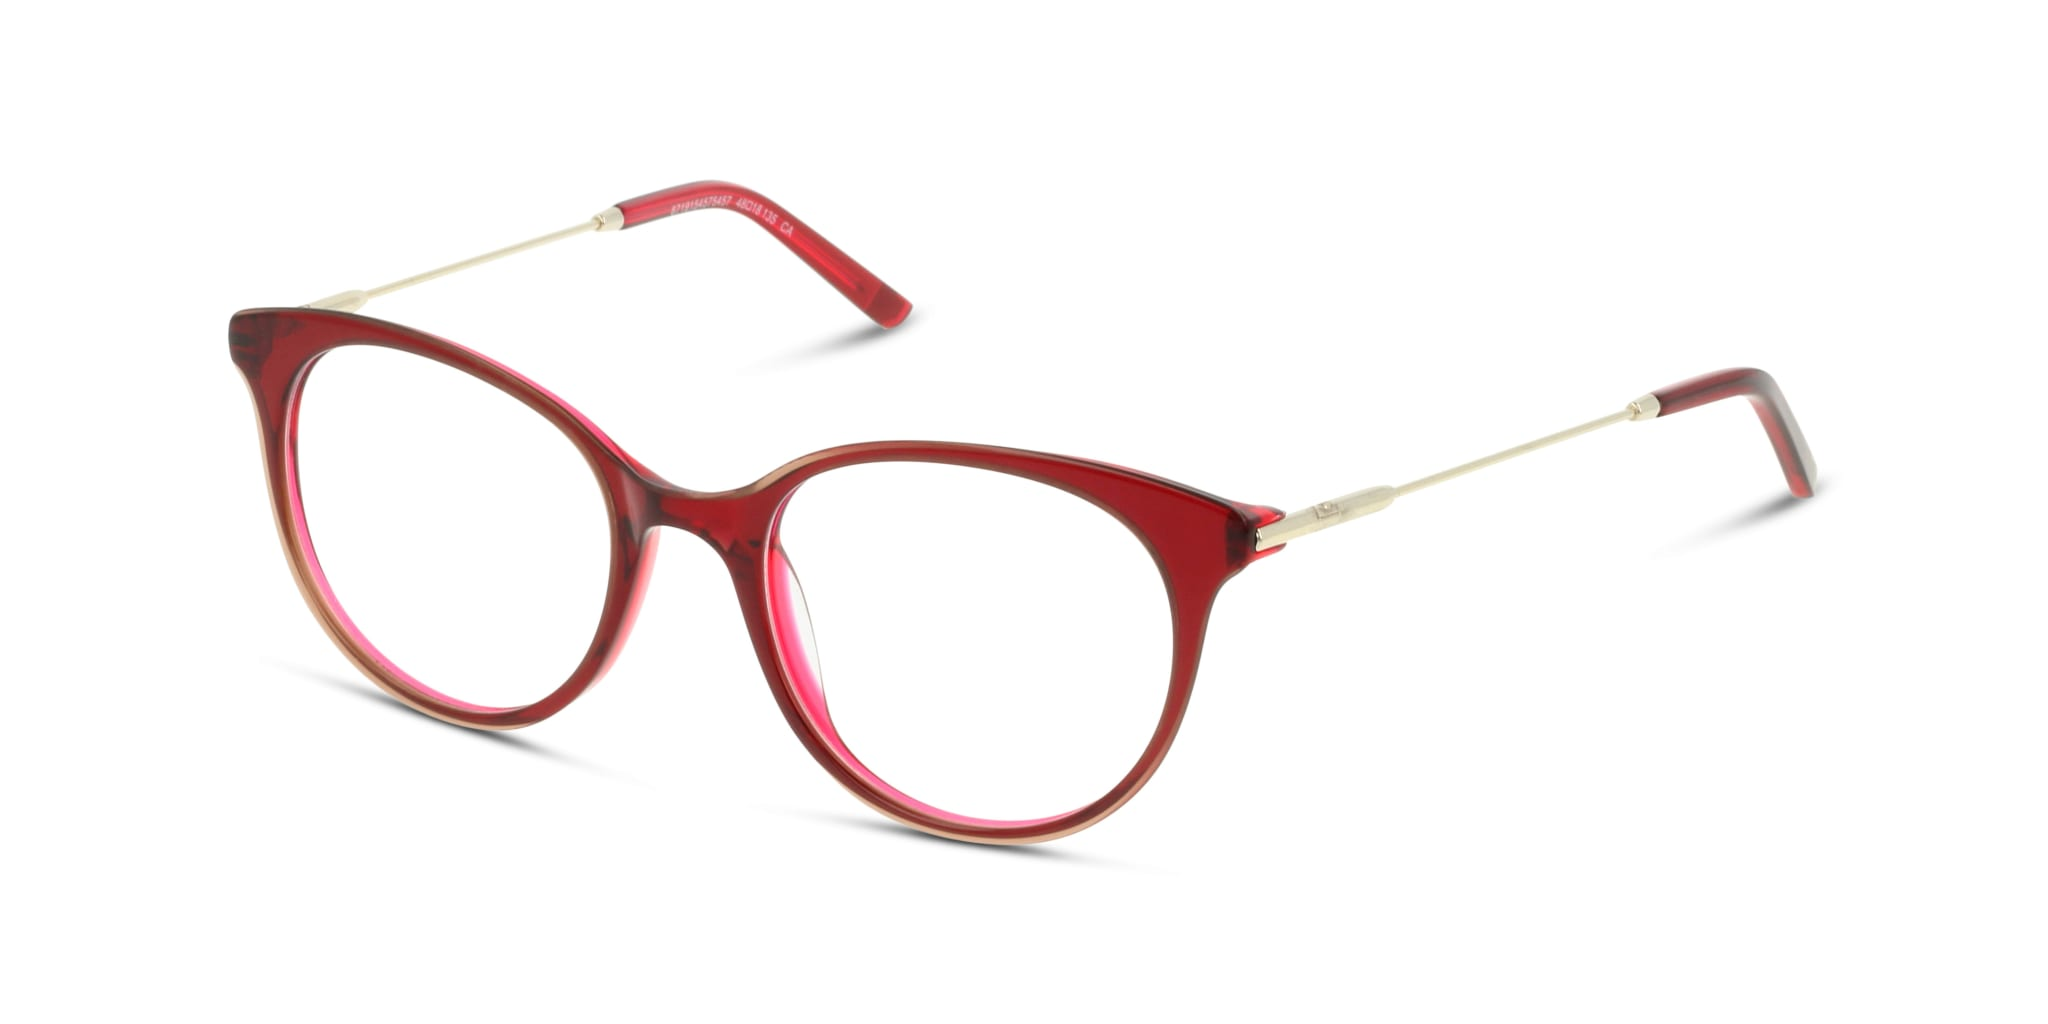 8719154575457-angle-03-5th-avenue-fakf08-eyewear-red-gold